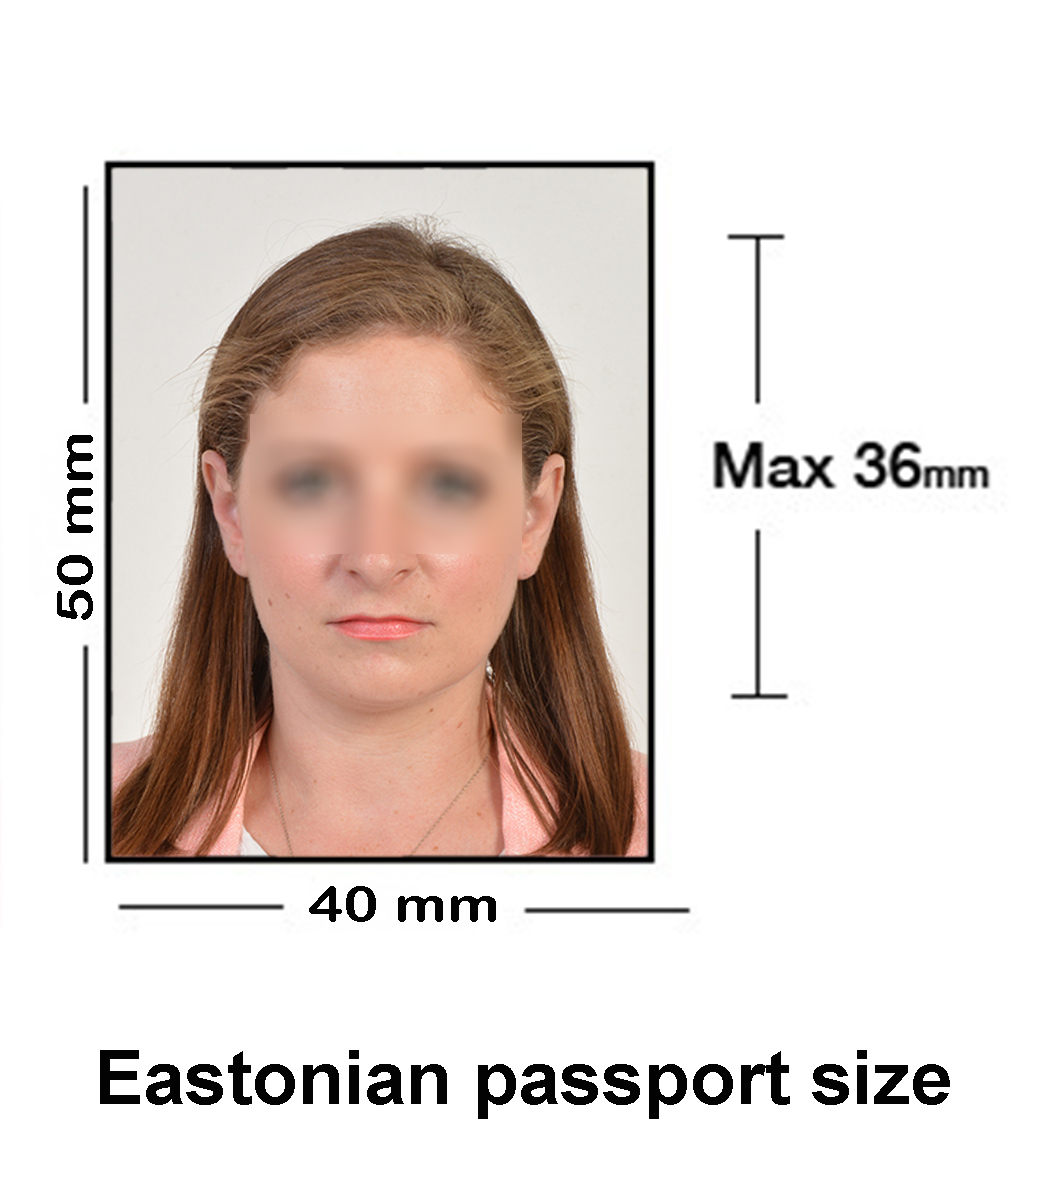 eastonian-passport-size-02